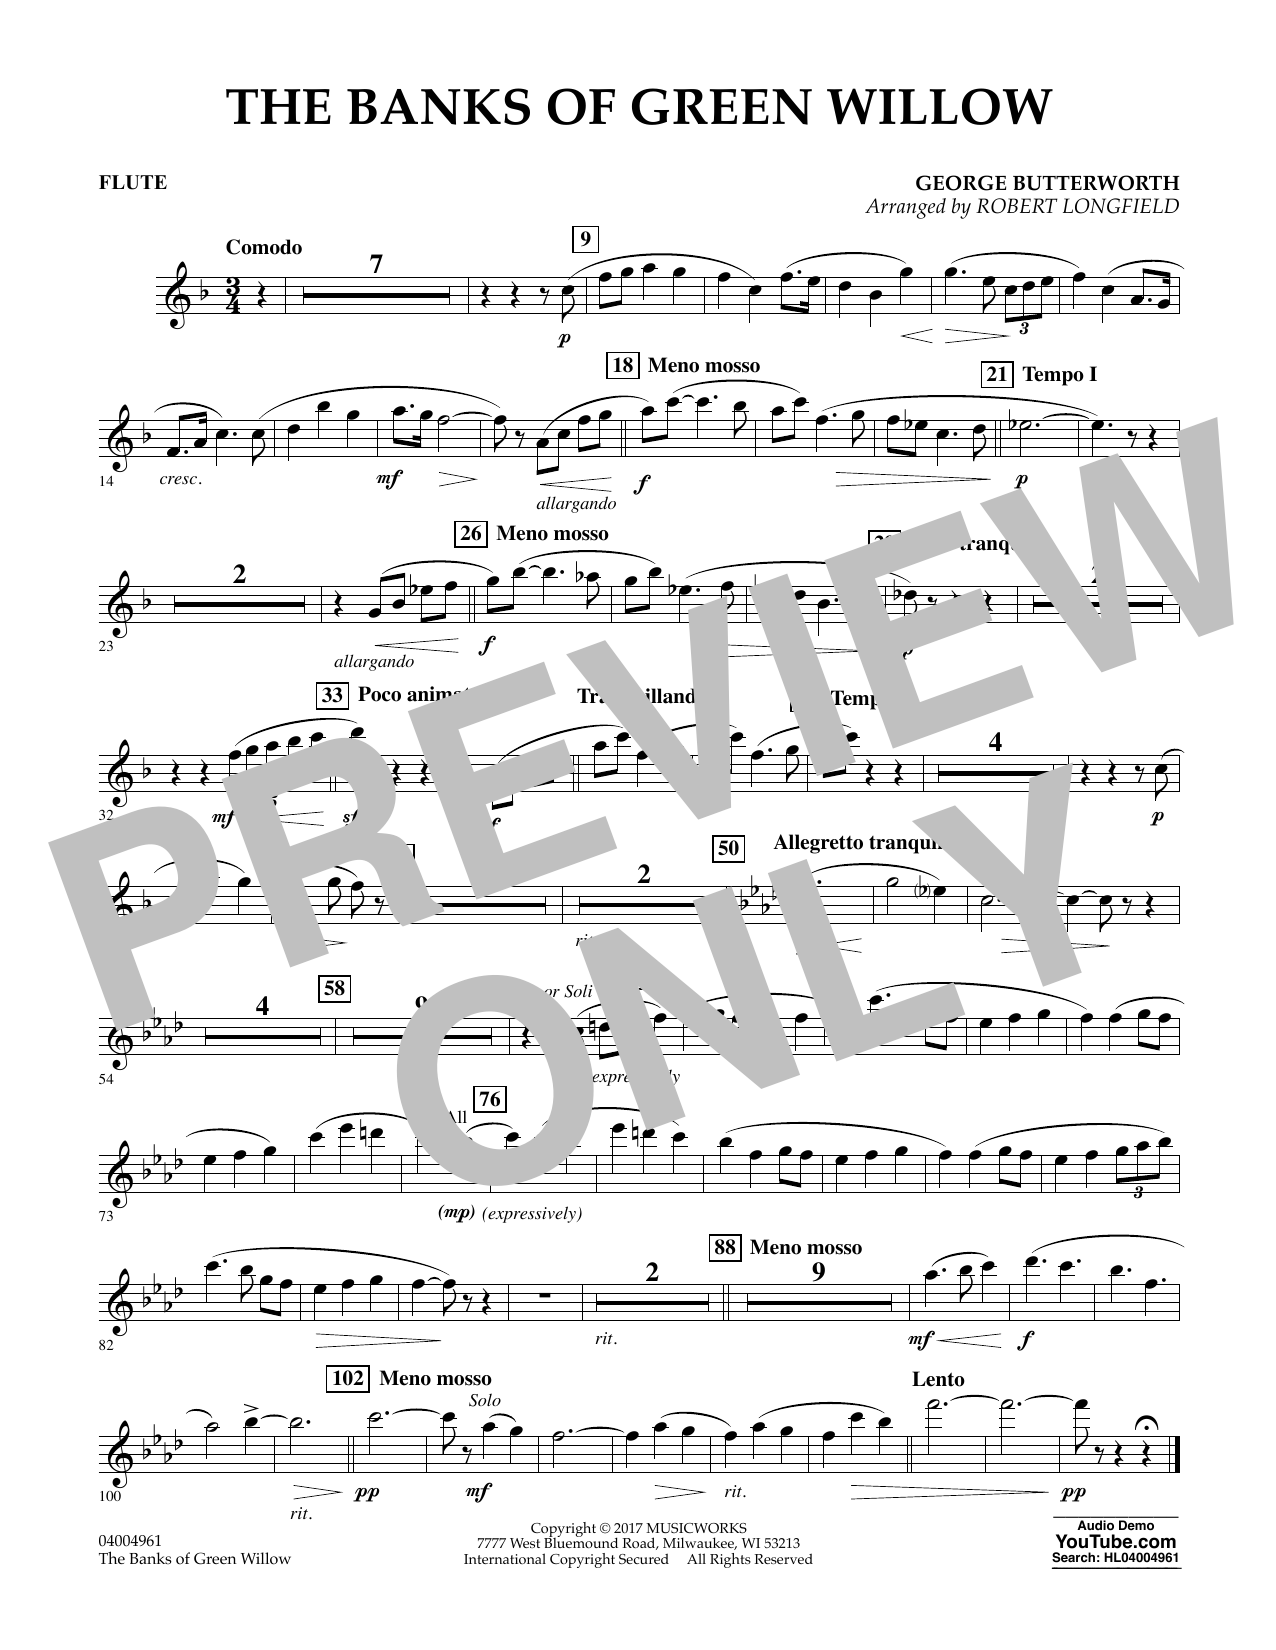 The Banks of Green Willow - Flute Sheet Music